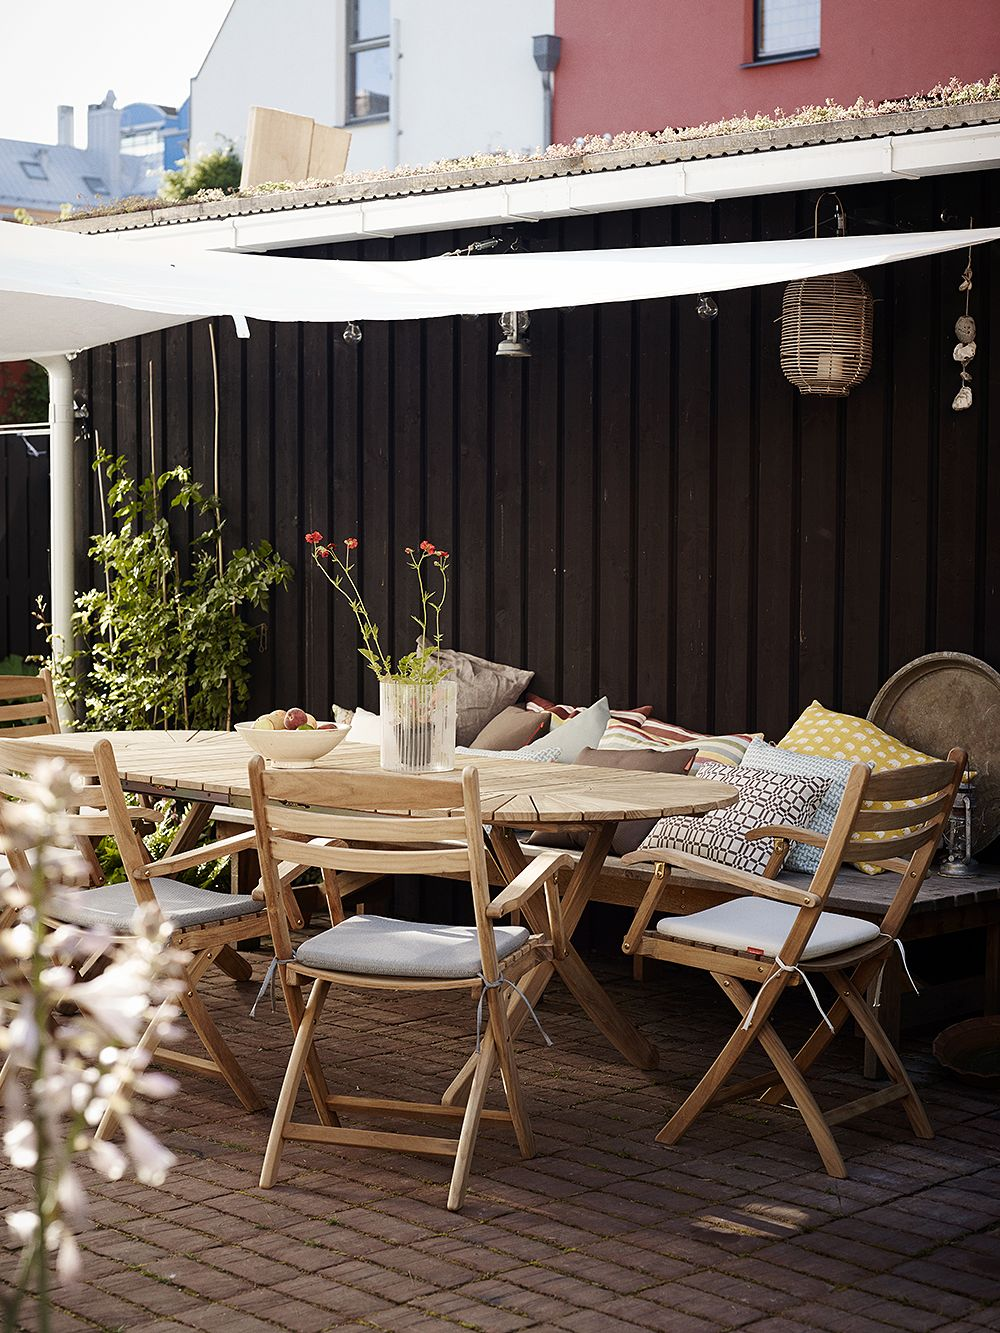 Skagerak's Selandia patio furniture outdoors.